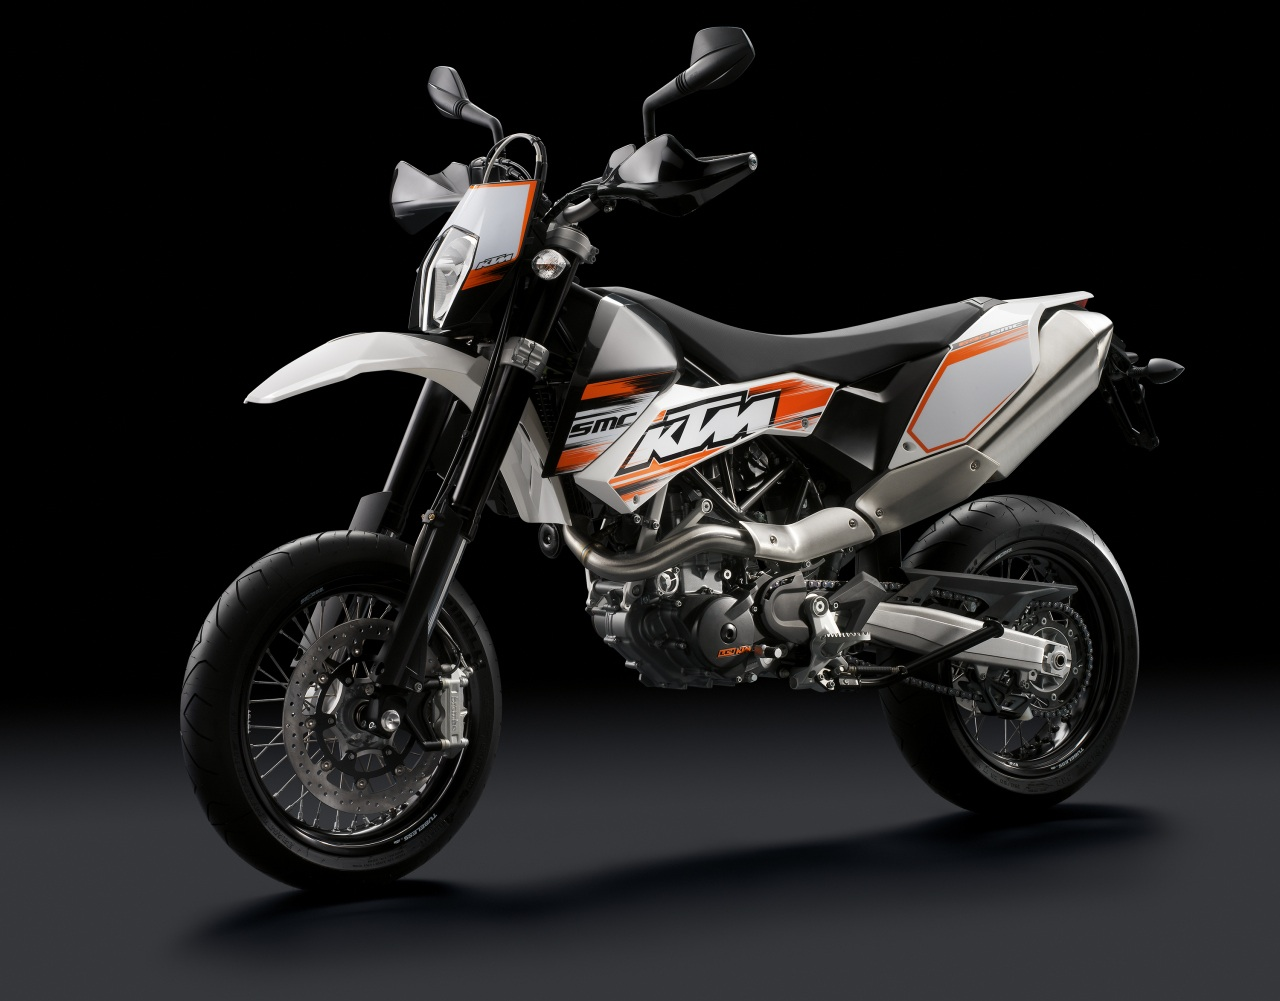 Ktm 690 smc r wallpapers for desktop - Http 2 Bp Blogspot Com _tji9mrs6mk4 Tuxvietk3di 2011 Ktm 690 Smc